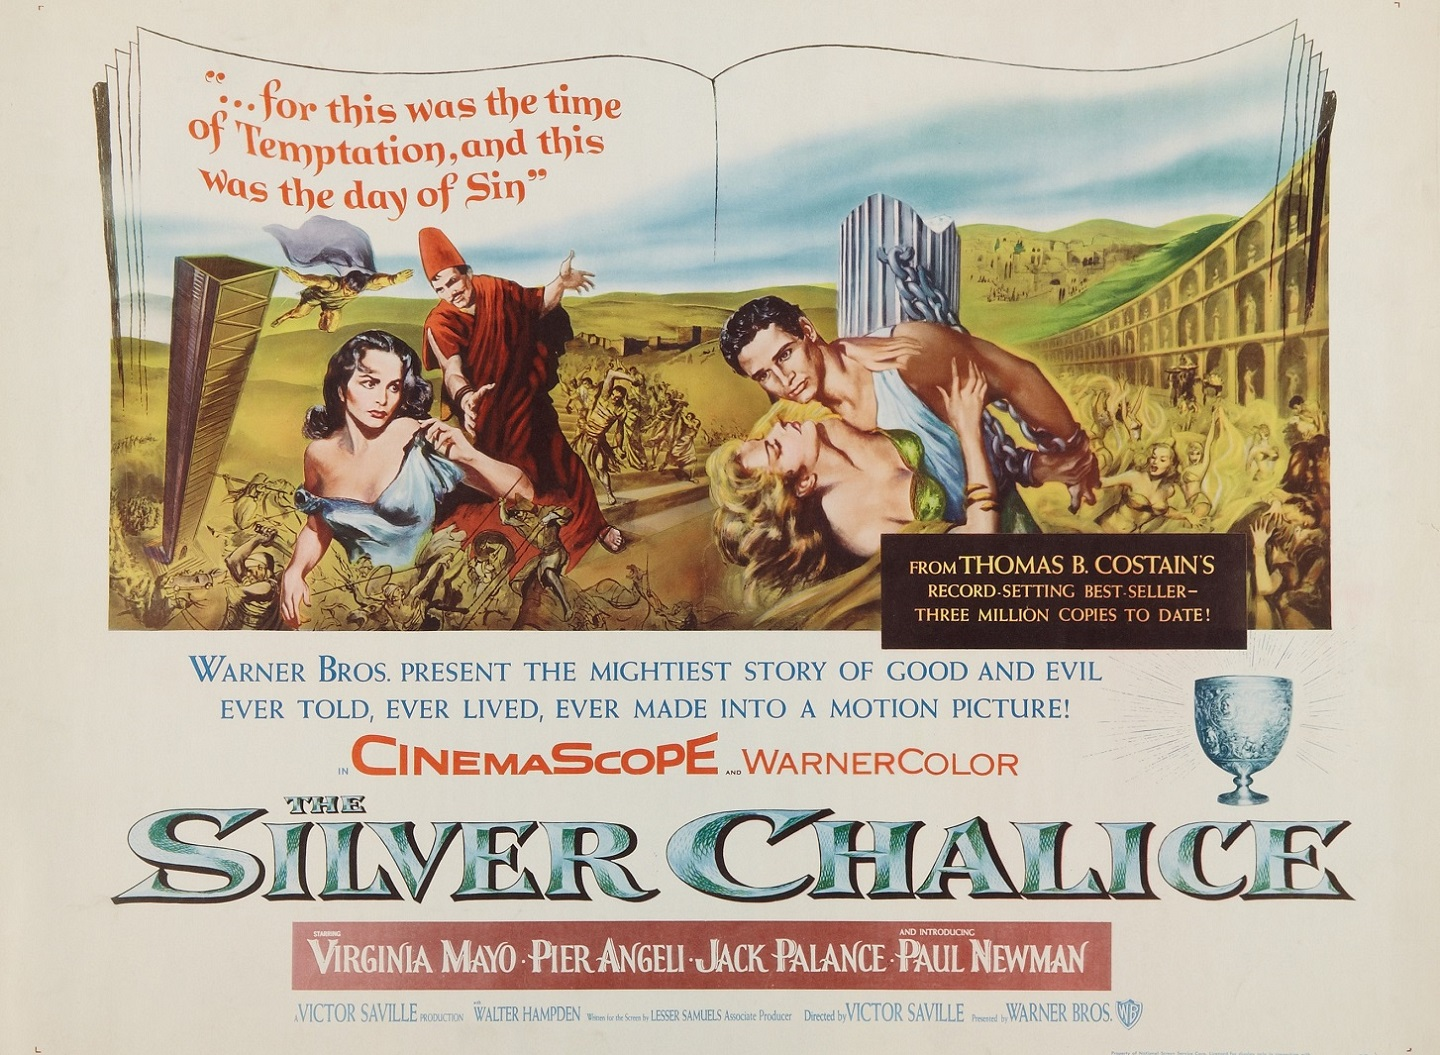 THE SILVER CHALICE (1954) WEB SITE